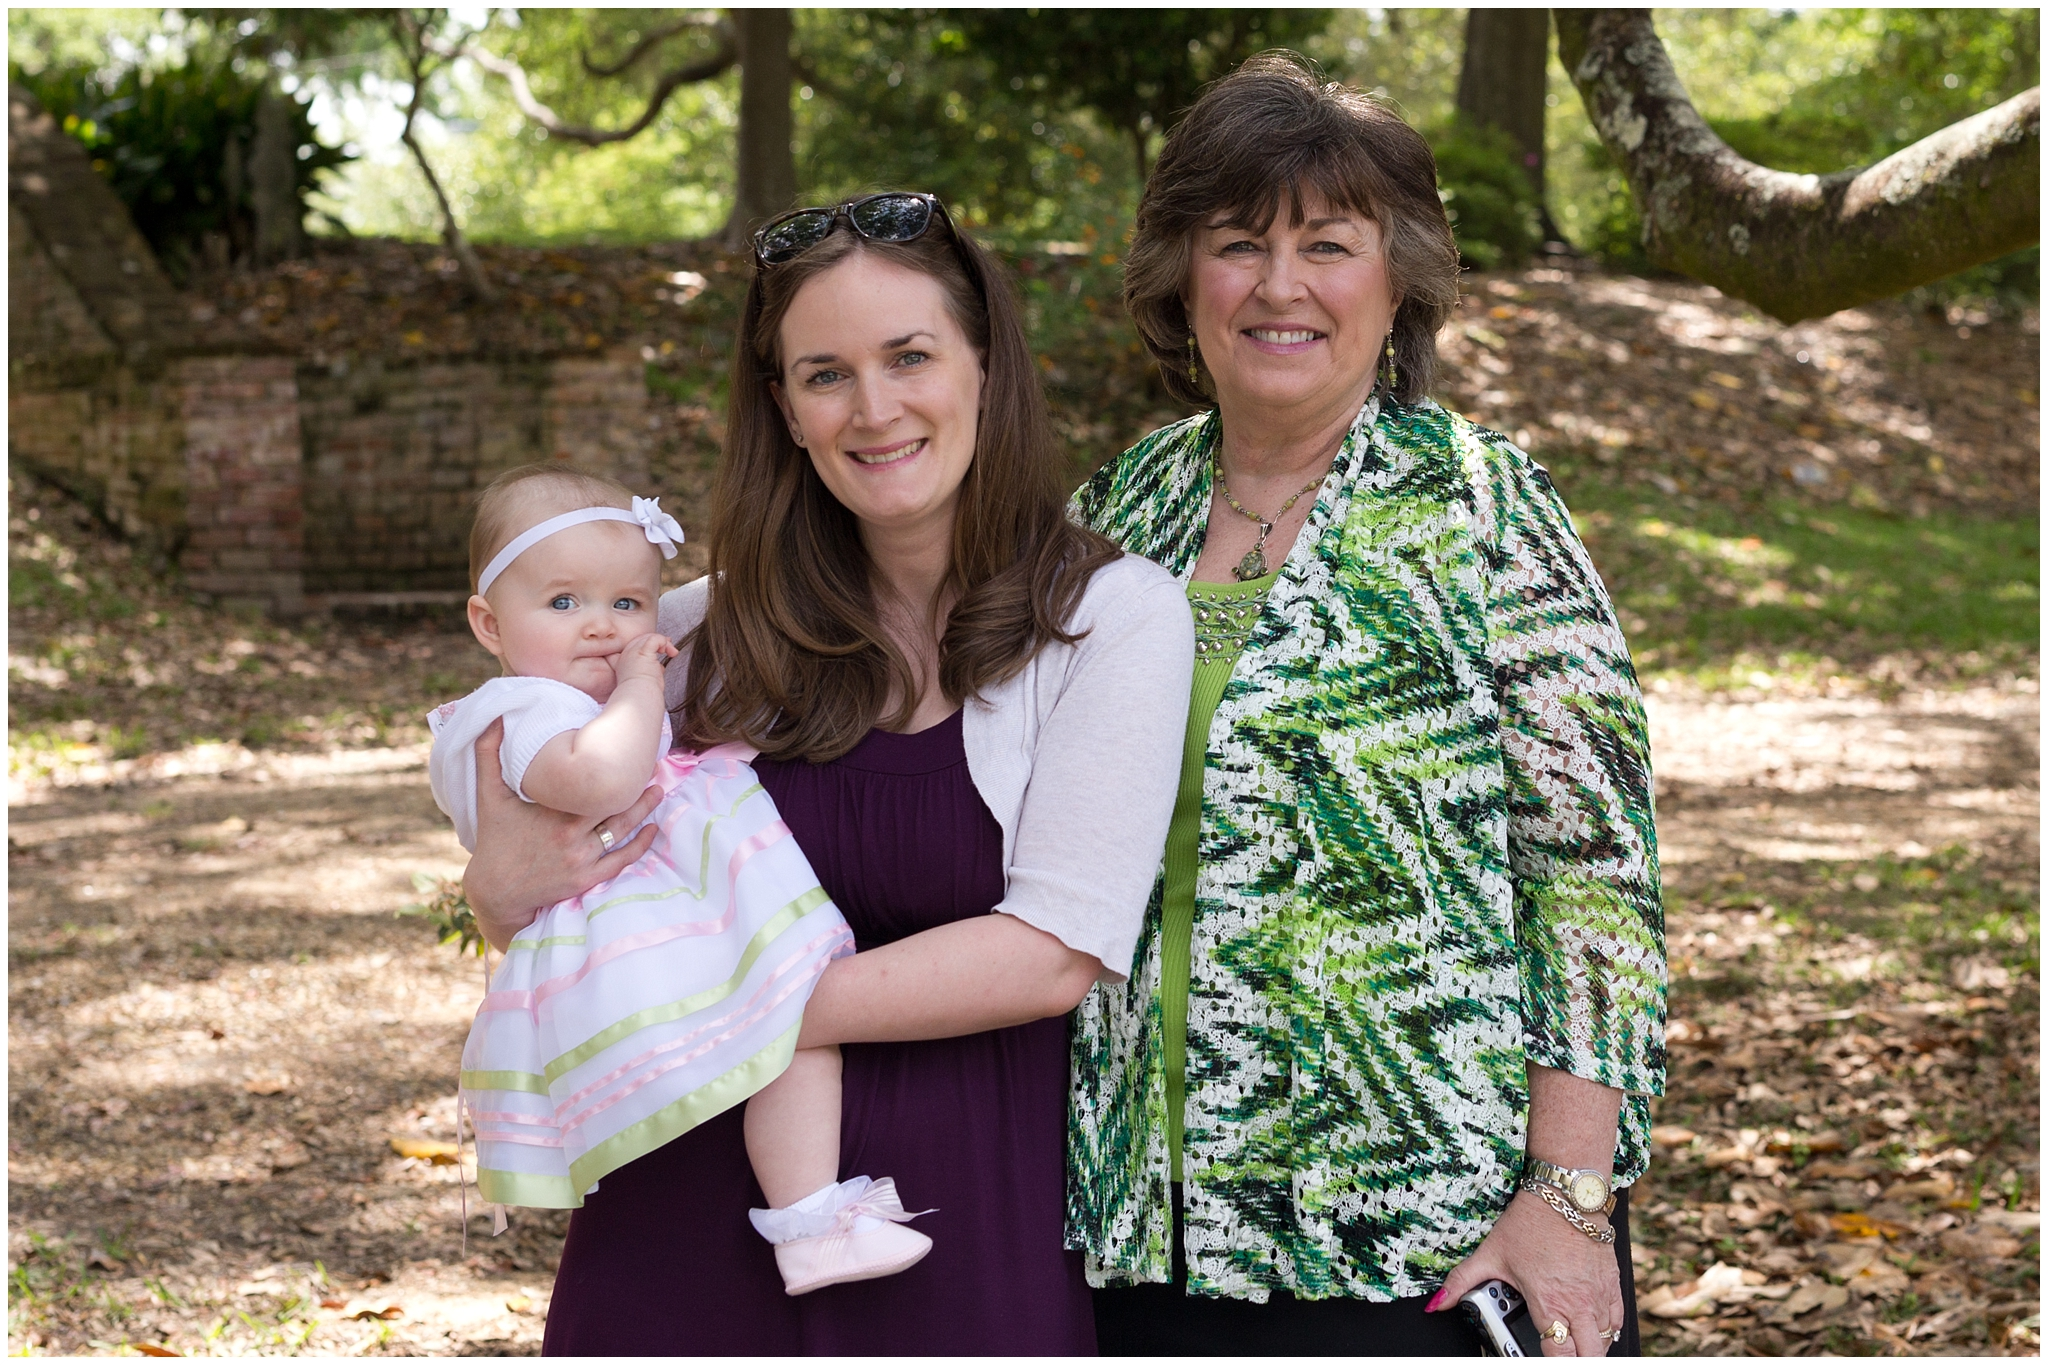 baby girl in Sunday dress with mother and grandmother